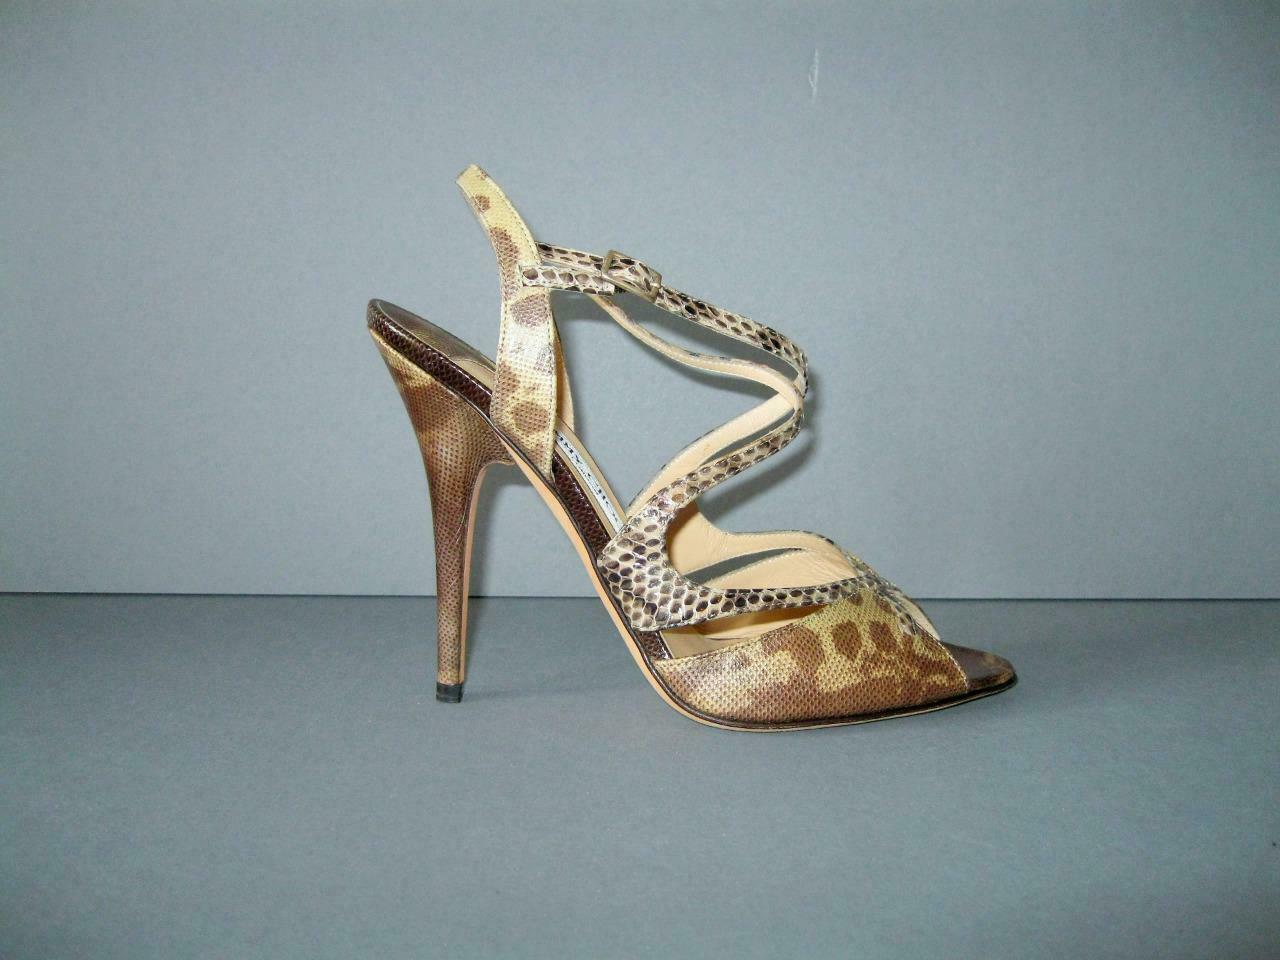 AUTHERENTIC NUOVO  JIMY CHO 39.5 LIZARD NATURALE OPEN TOE STRAPPY SANDALS NWOB  vendite online